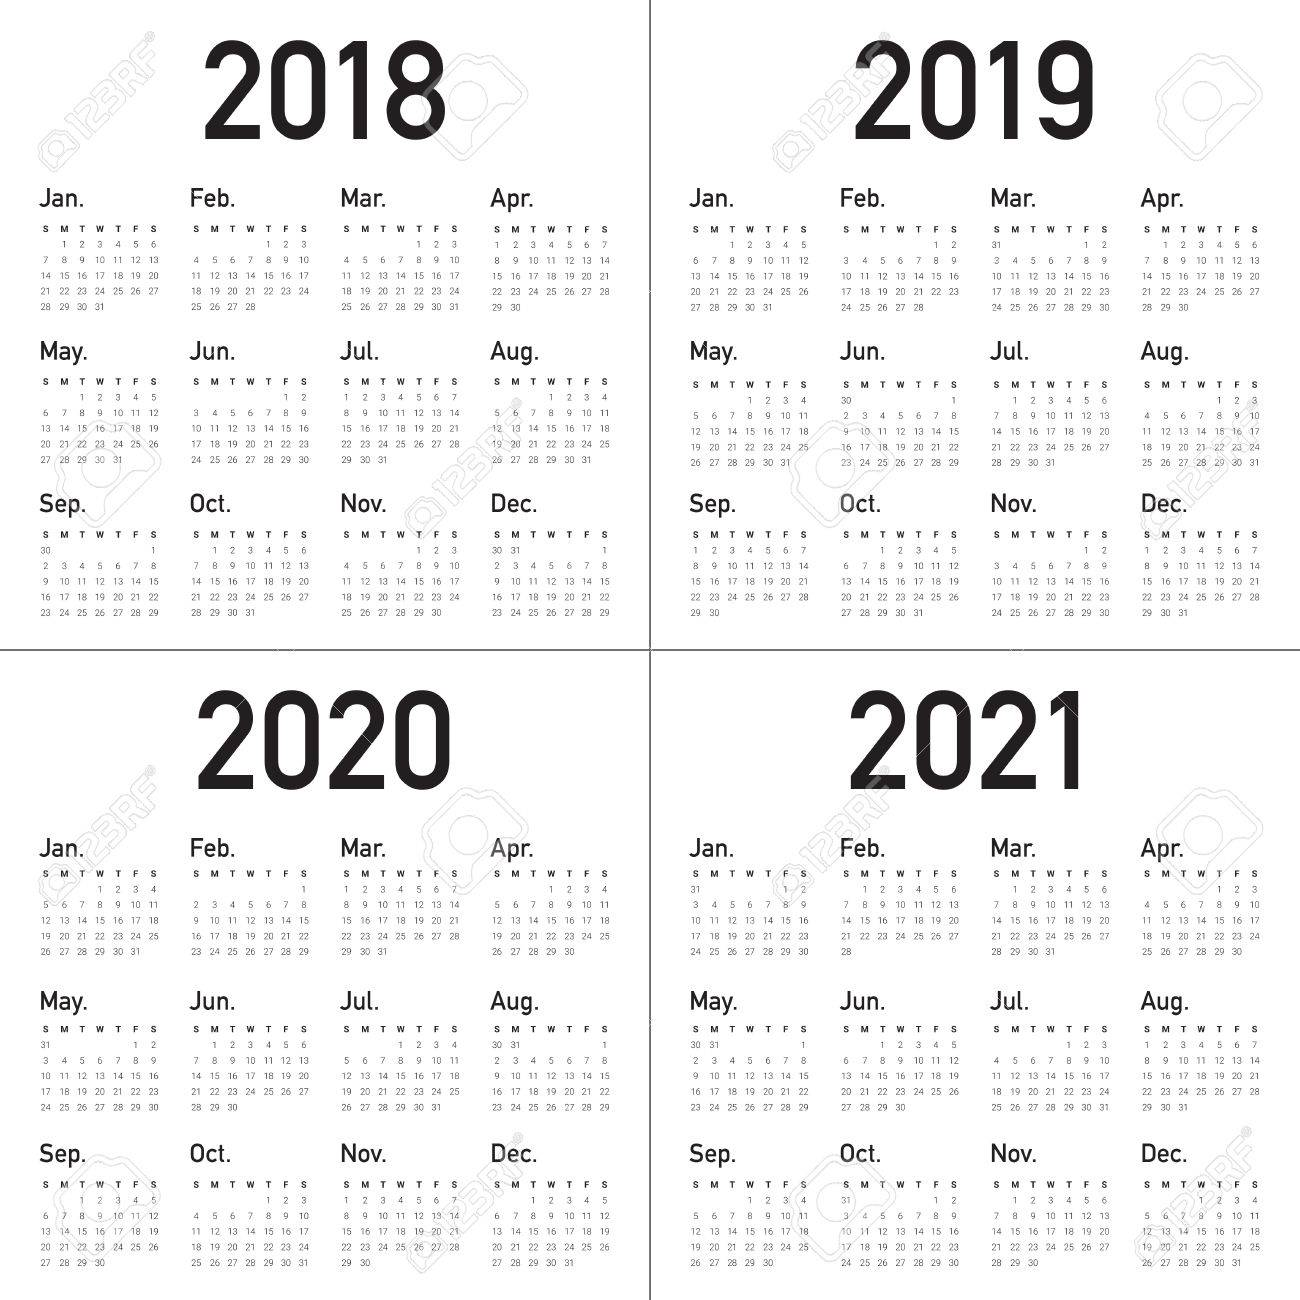 Calendar 2020 Vector Year 2018 2019 2020 2021 Calendar Vector Design Template, Simple